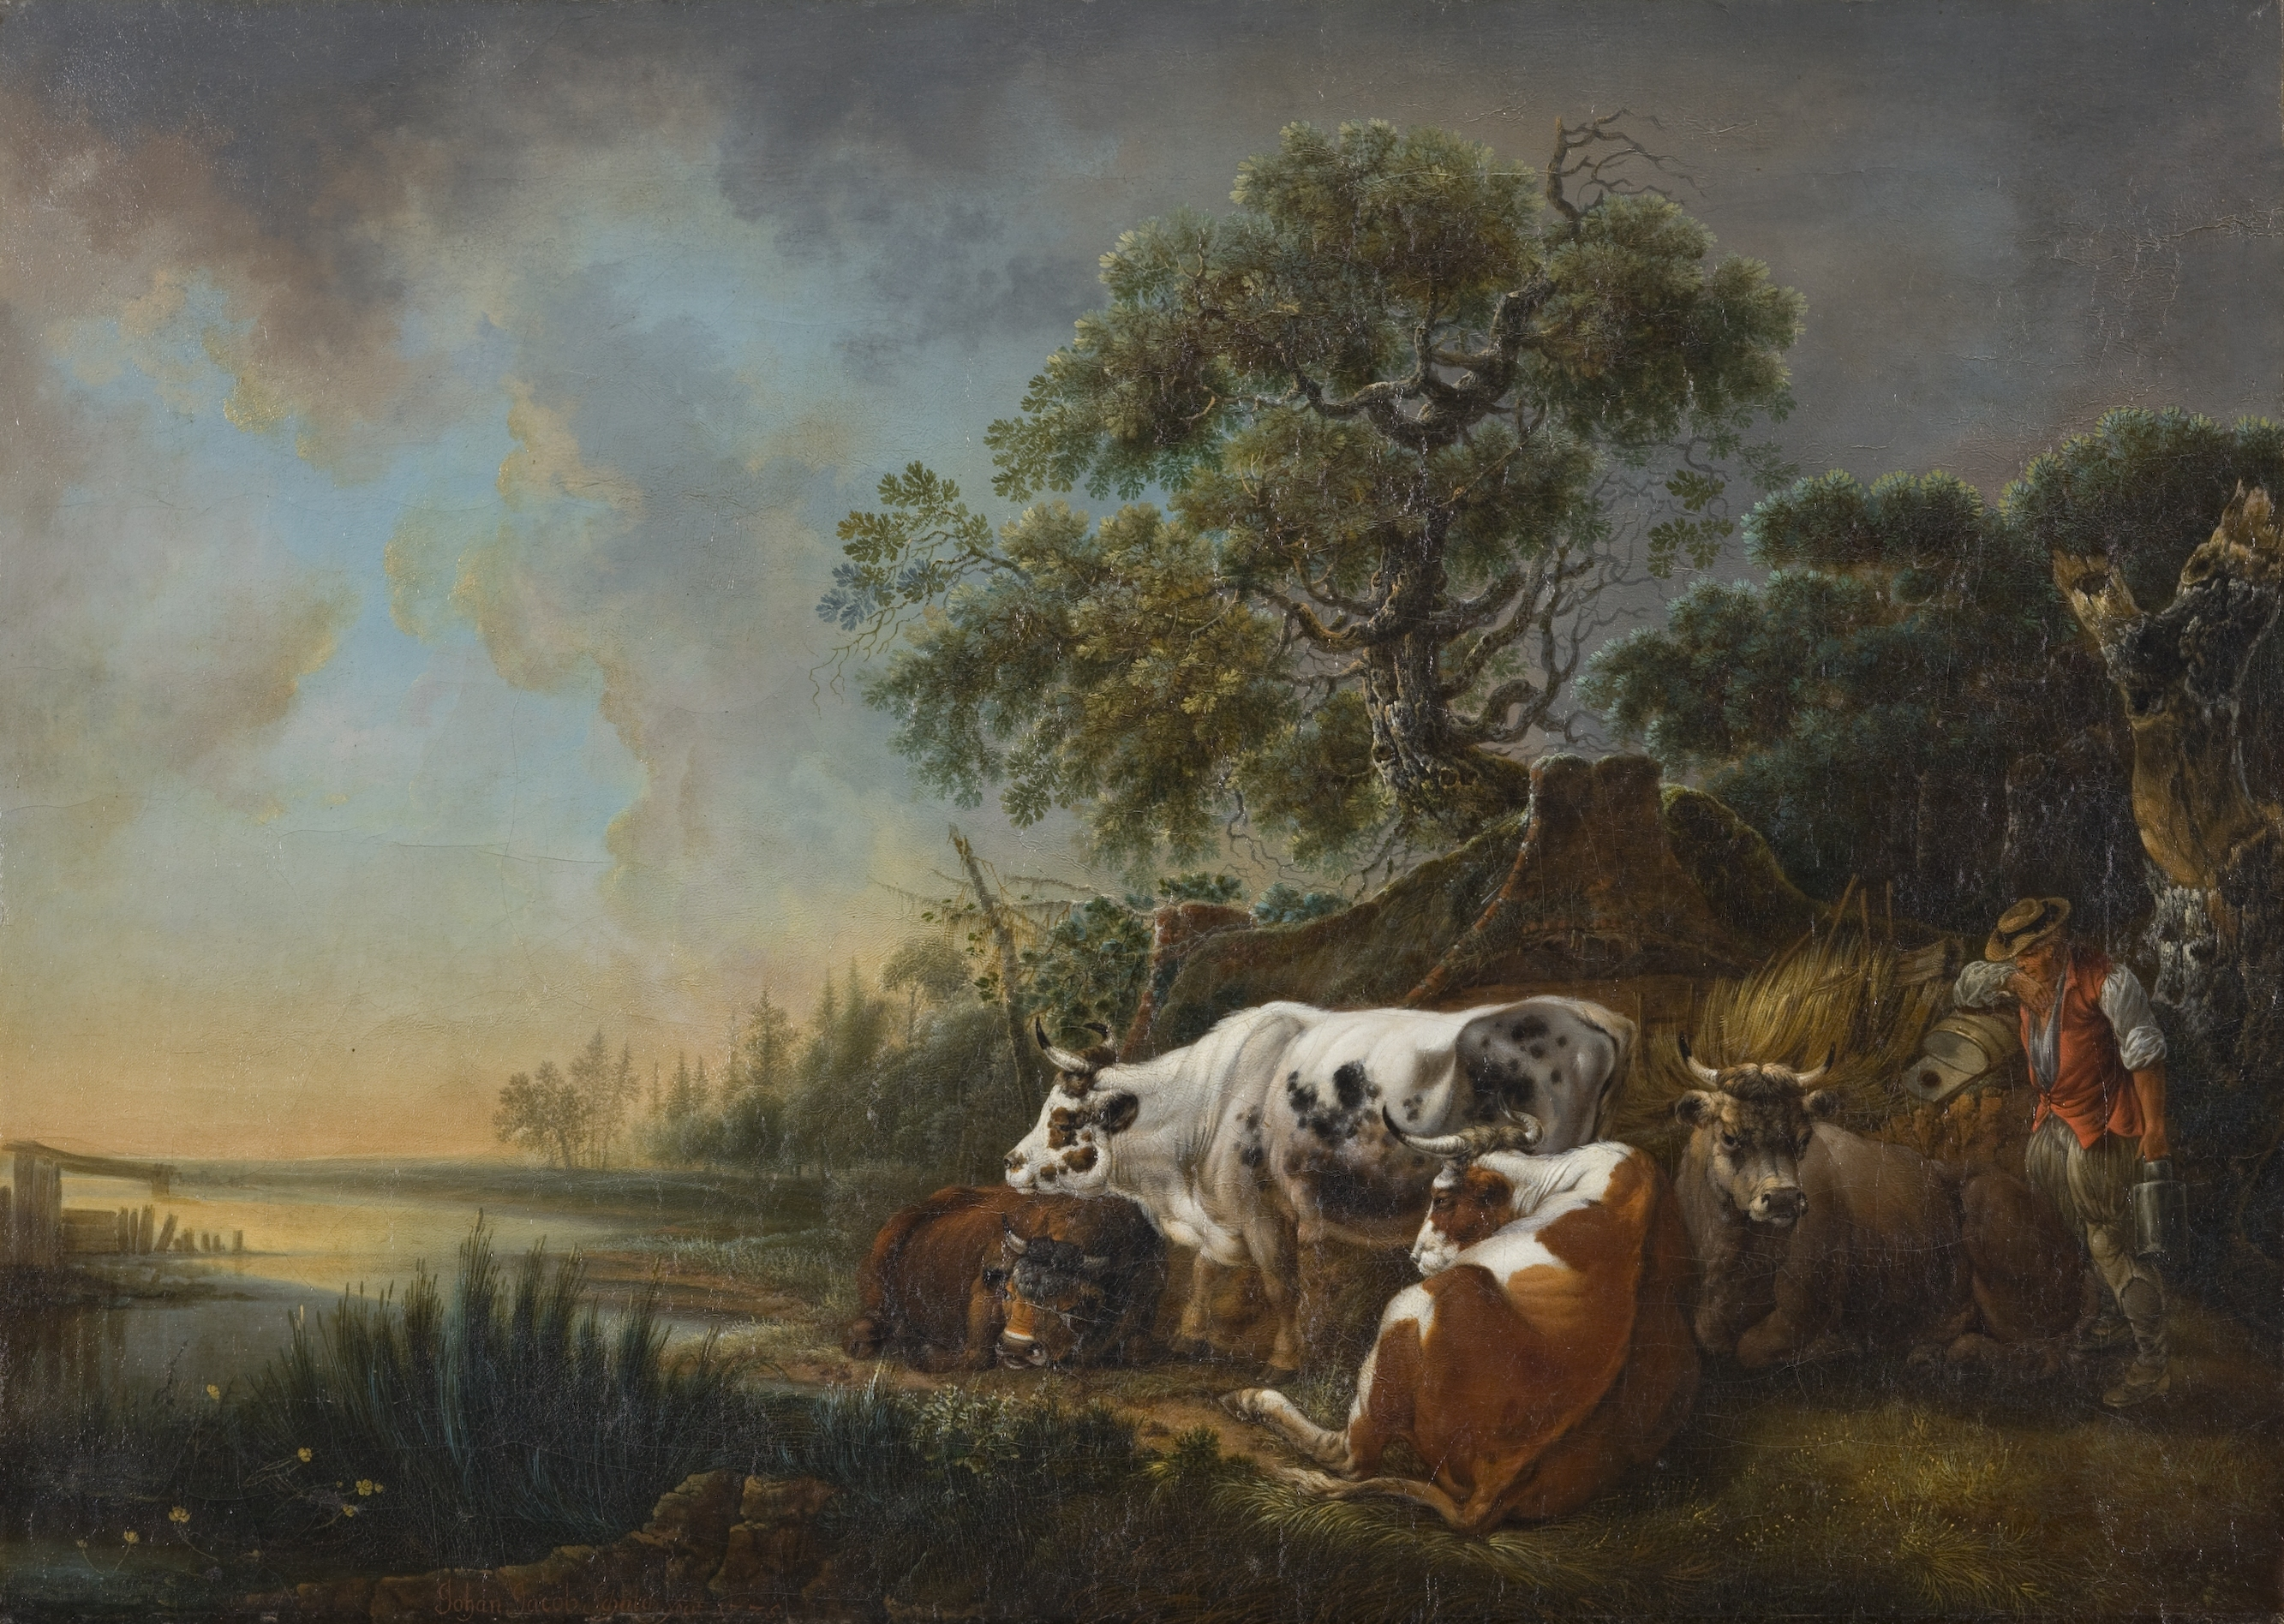 Farmer with cows at a river bank (1775)